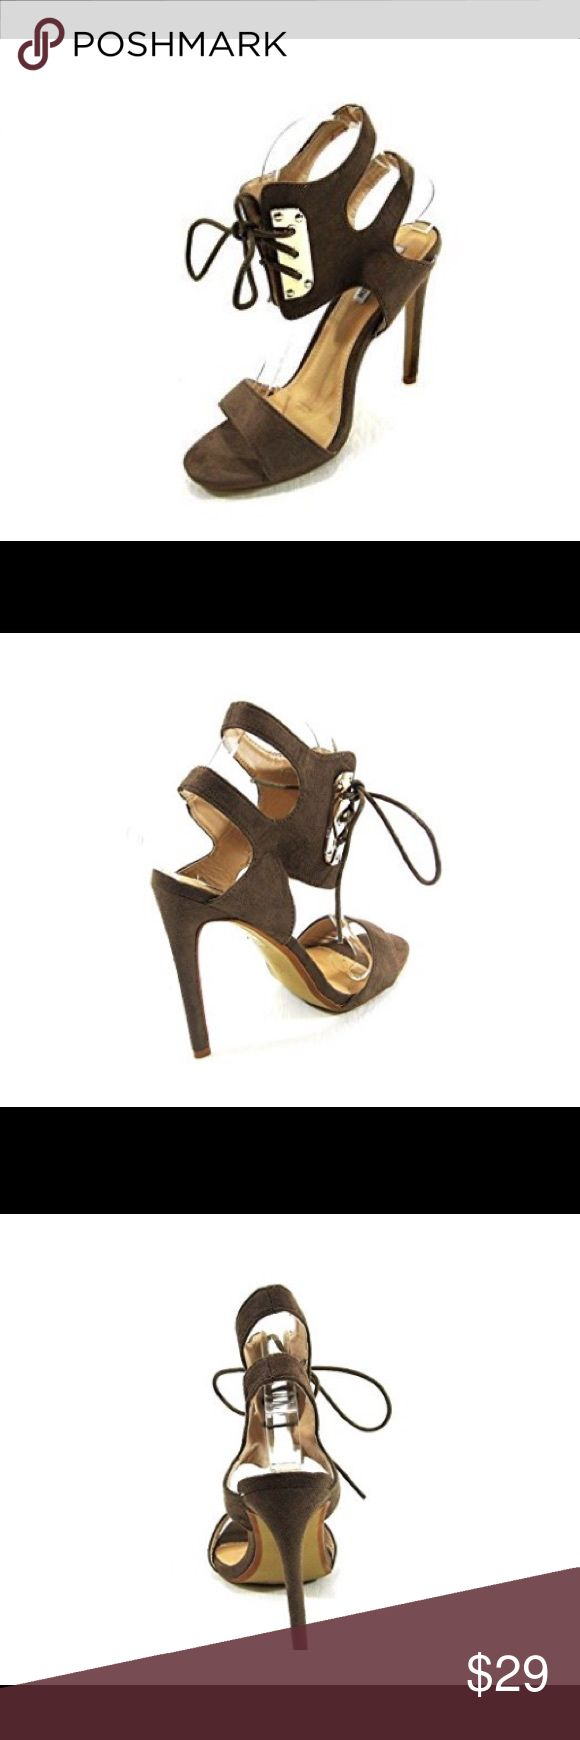 NWOB Cape Robbin Alza Women's Open Toe Sandal Cape Robbin Alza Women's Open Toe High Heel Faux Suede Sandal, Ankle Lace-up Band, Wide Toe Strap, Size 8, Color -Khaki, Heel approximately 4.5 inches Shoes Sandals